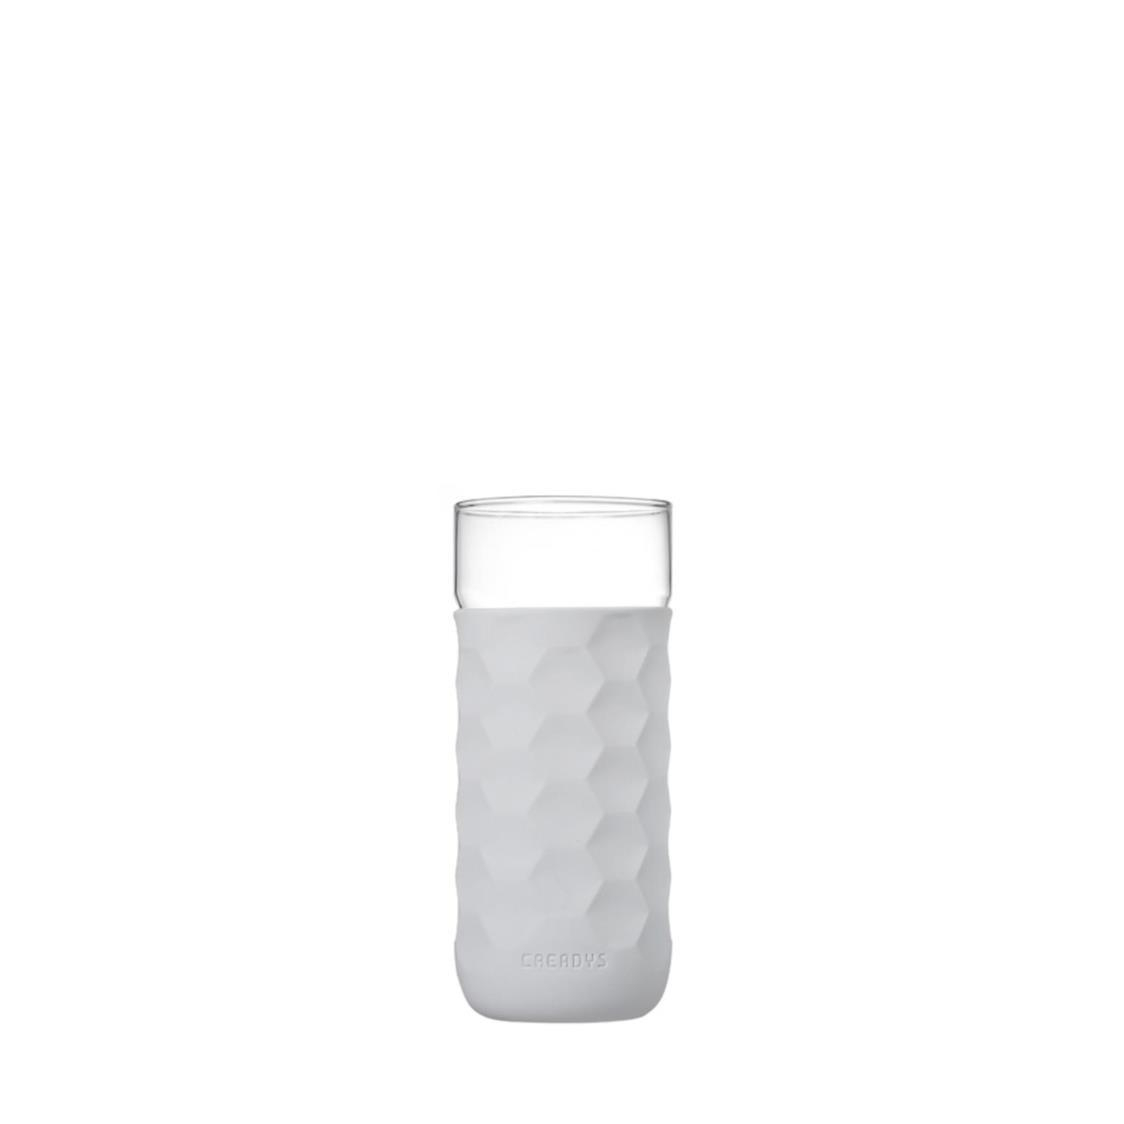 Honey Comb Tumbler Grey 380mlSet of 4